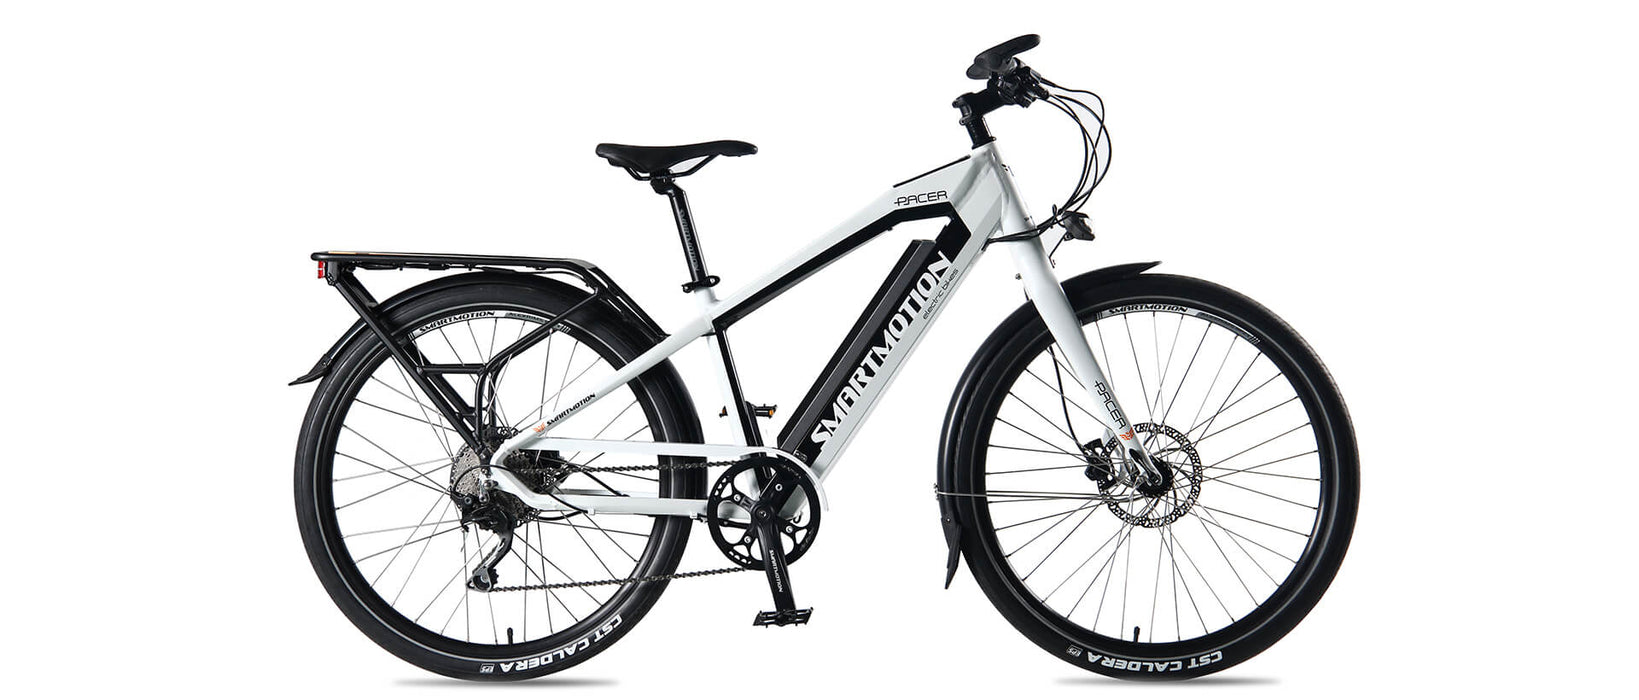 SmartMotion Pacer Electric Commuter Bike - Electric Bike & Skate